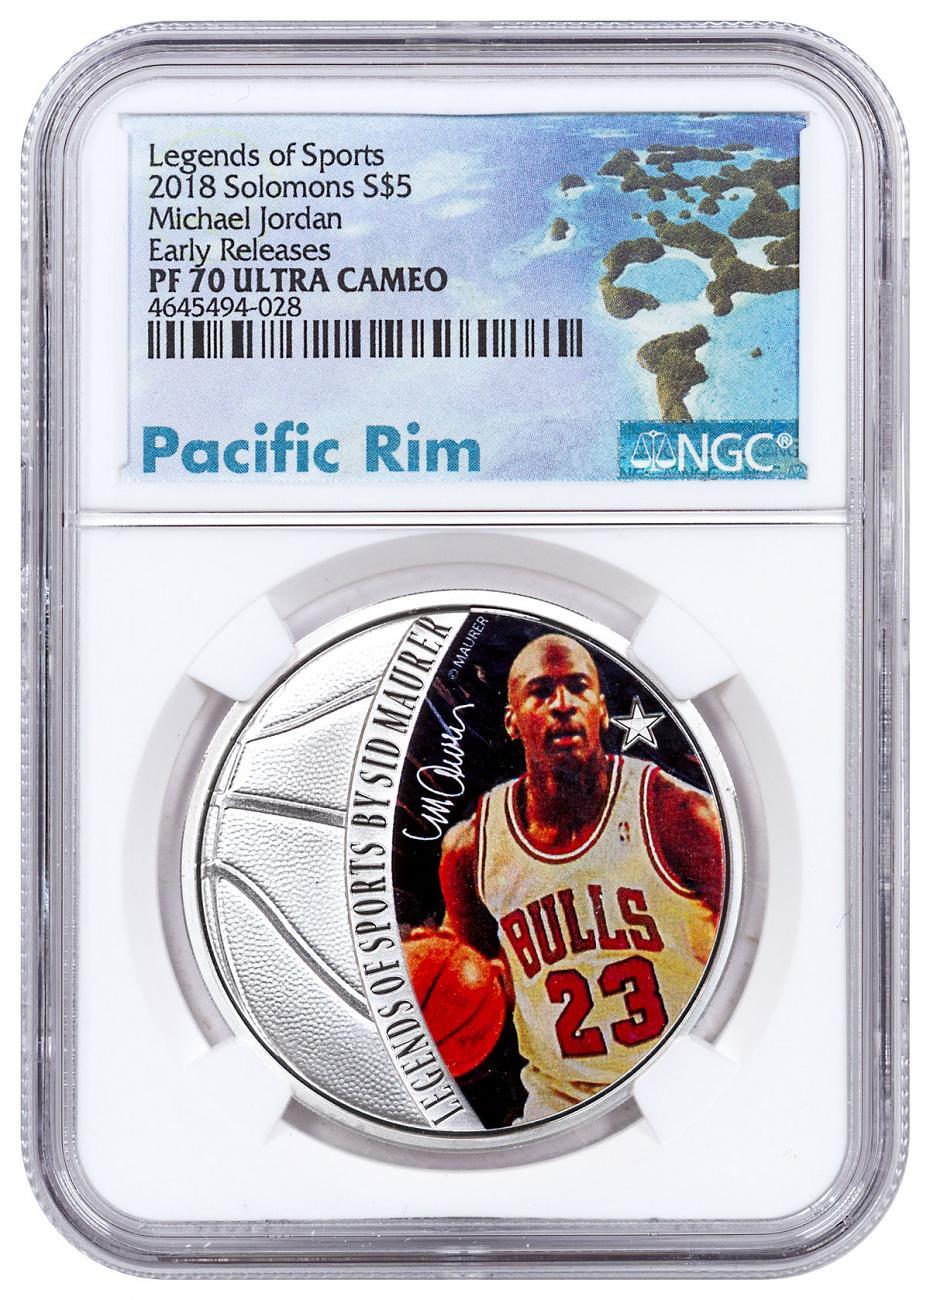 2018 Solomon Islands Legends of Sports - Michael Jordan 1 oz Silver Colorized Proof $5 Coin NGC PF70 UC ER Exclusive Pacific Rim Label